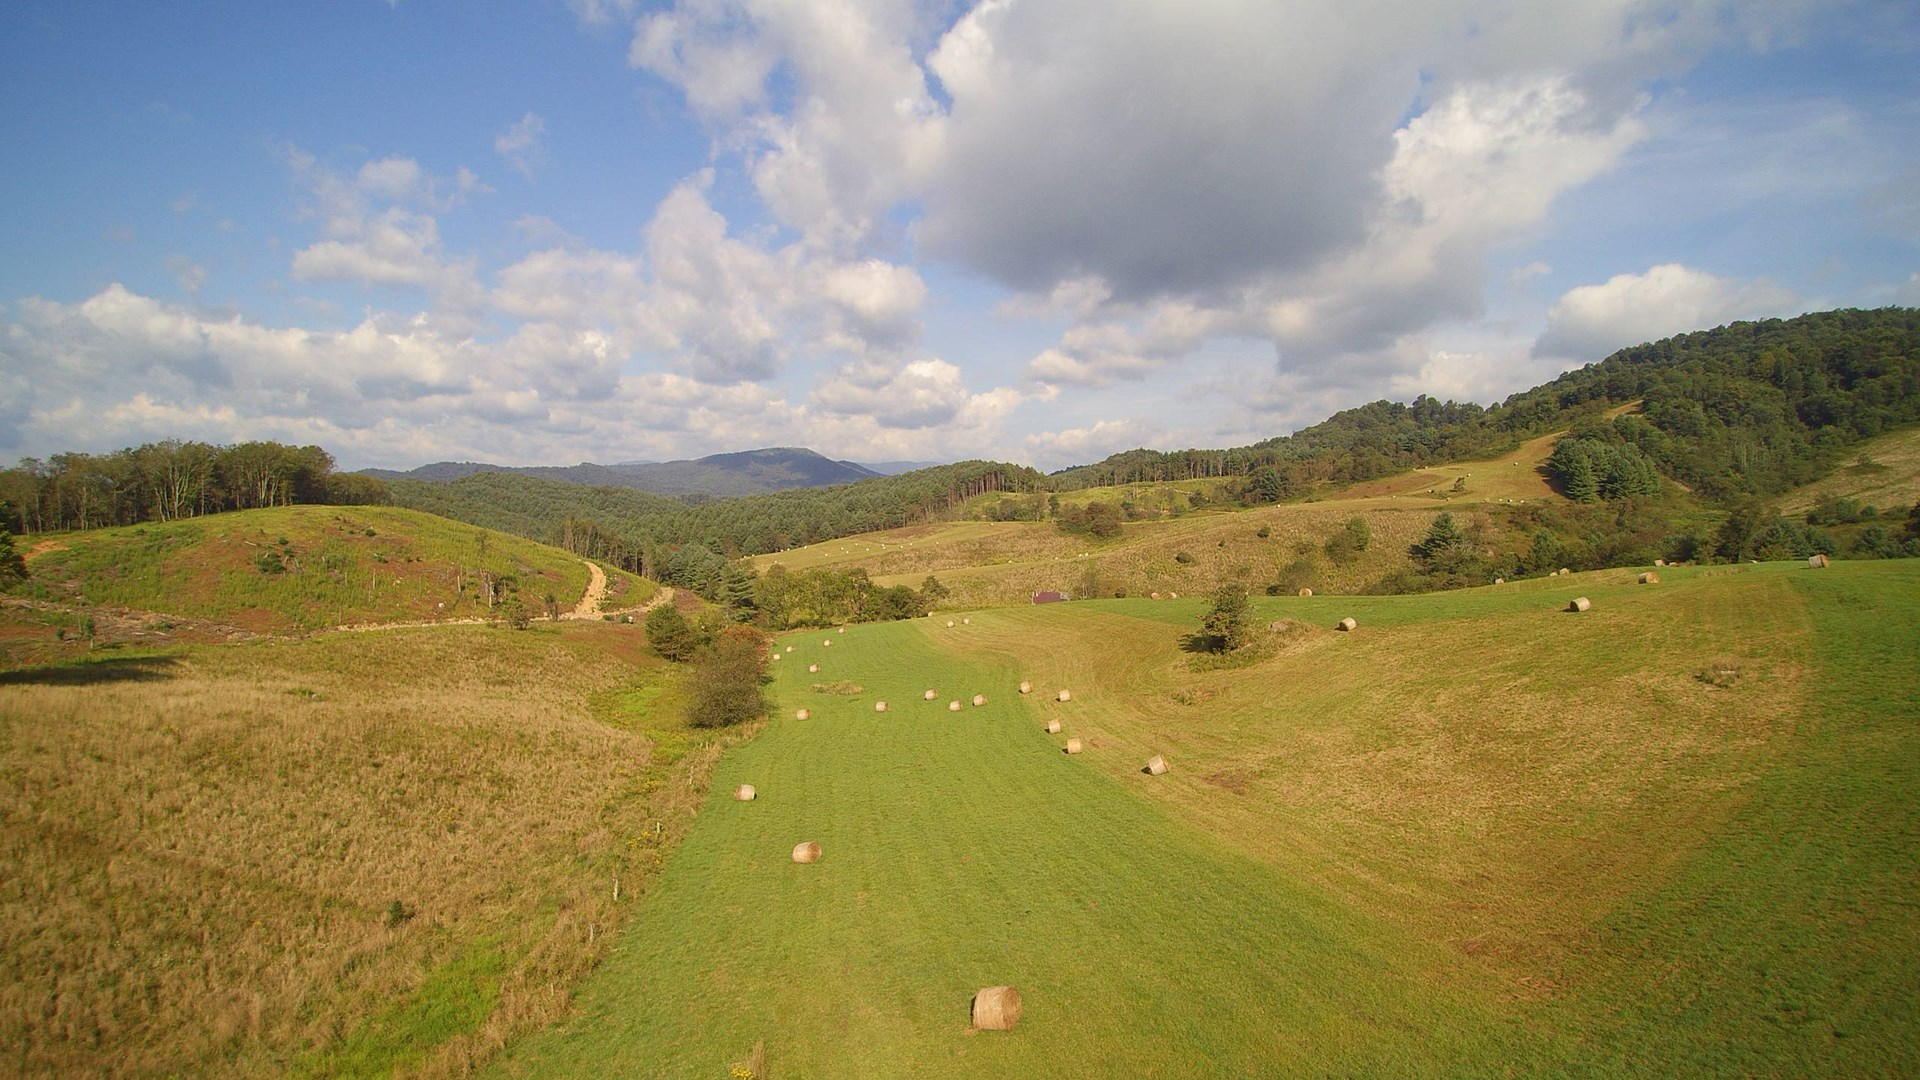 Large Acreage Tract with Views in the Blue Ridge Mountains